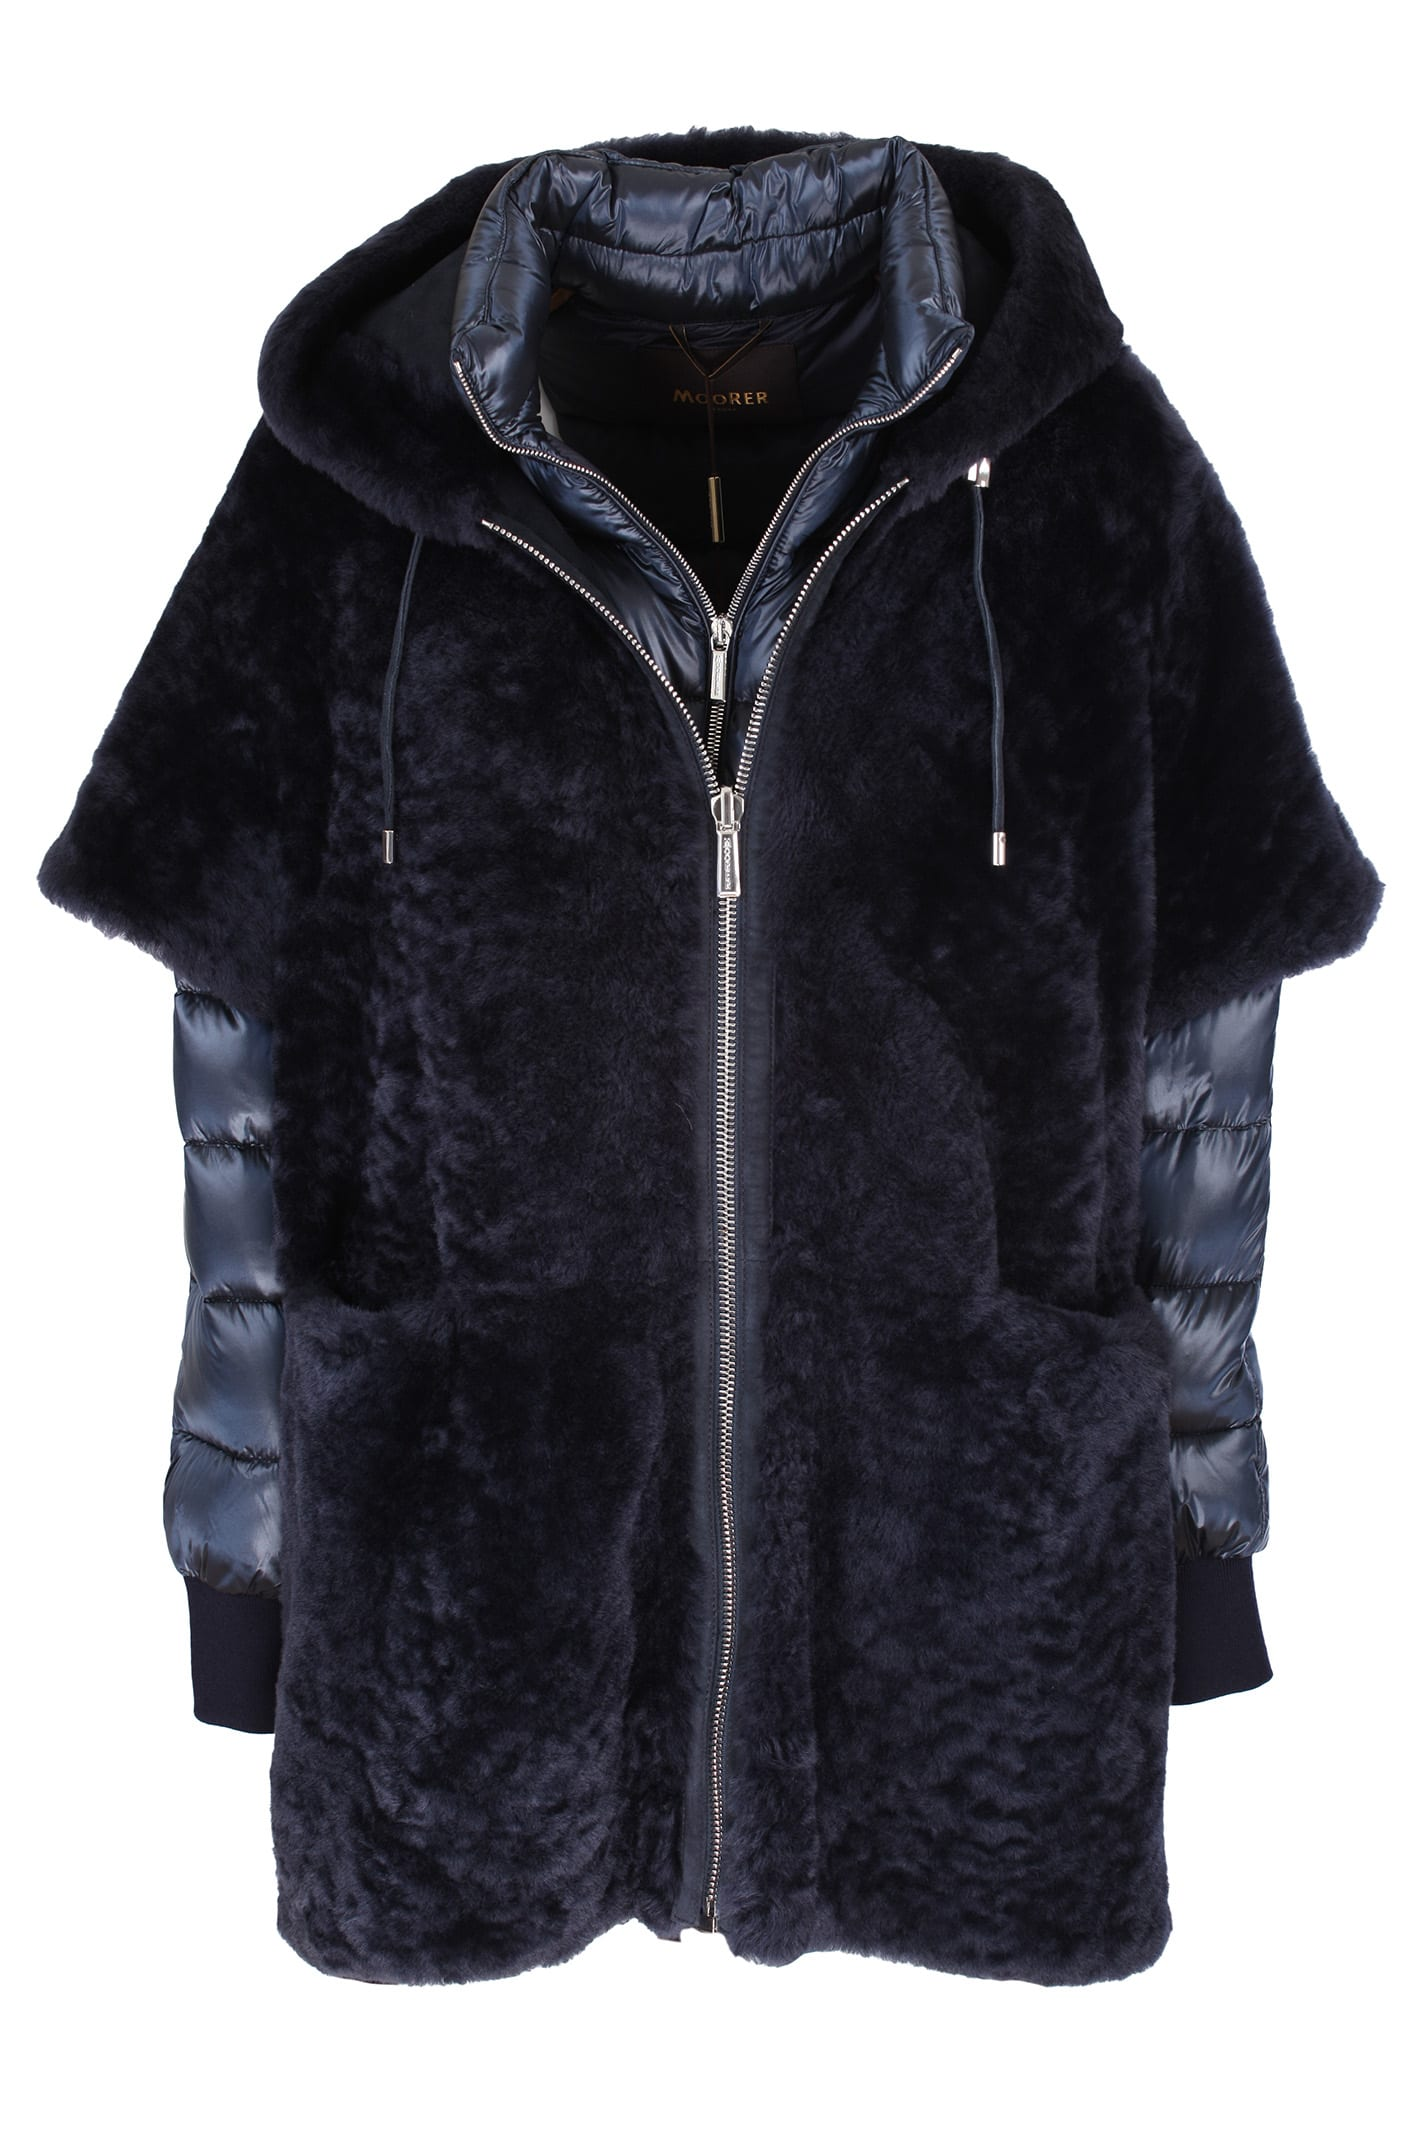 Photo of  MooRER reversible sheepskin coat- shop Moorer jackets online sales